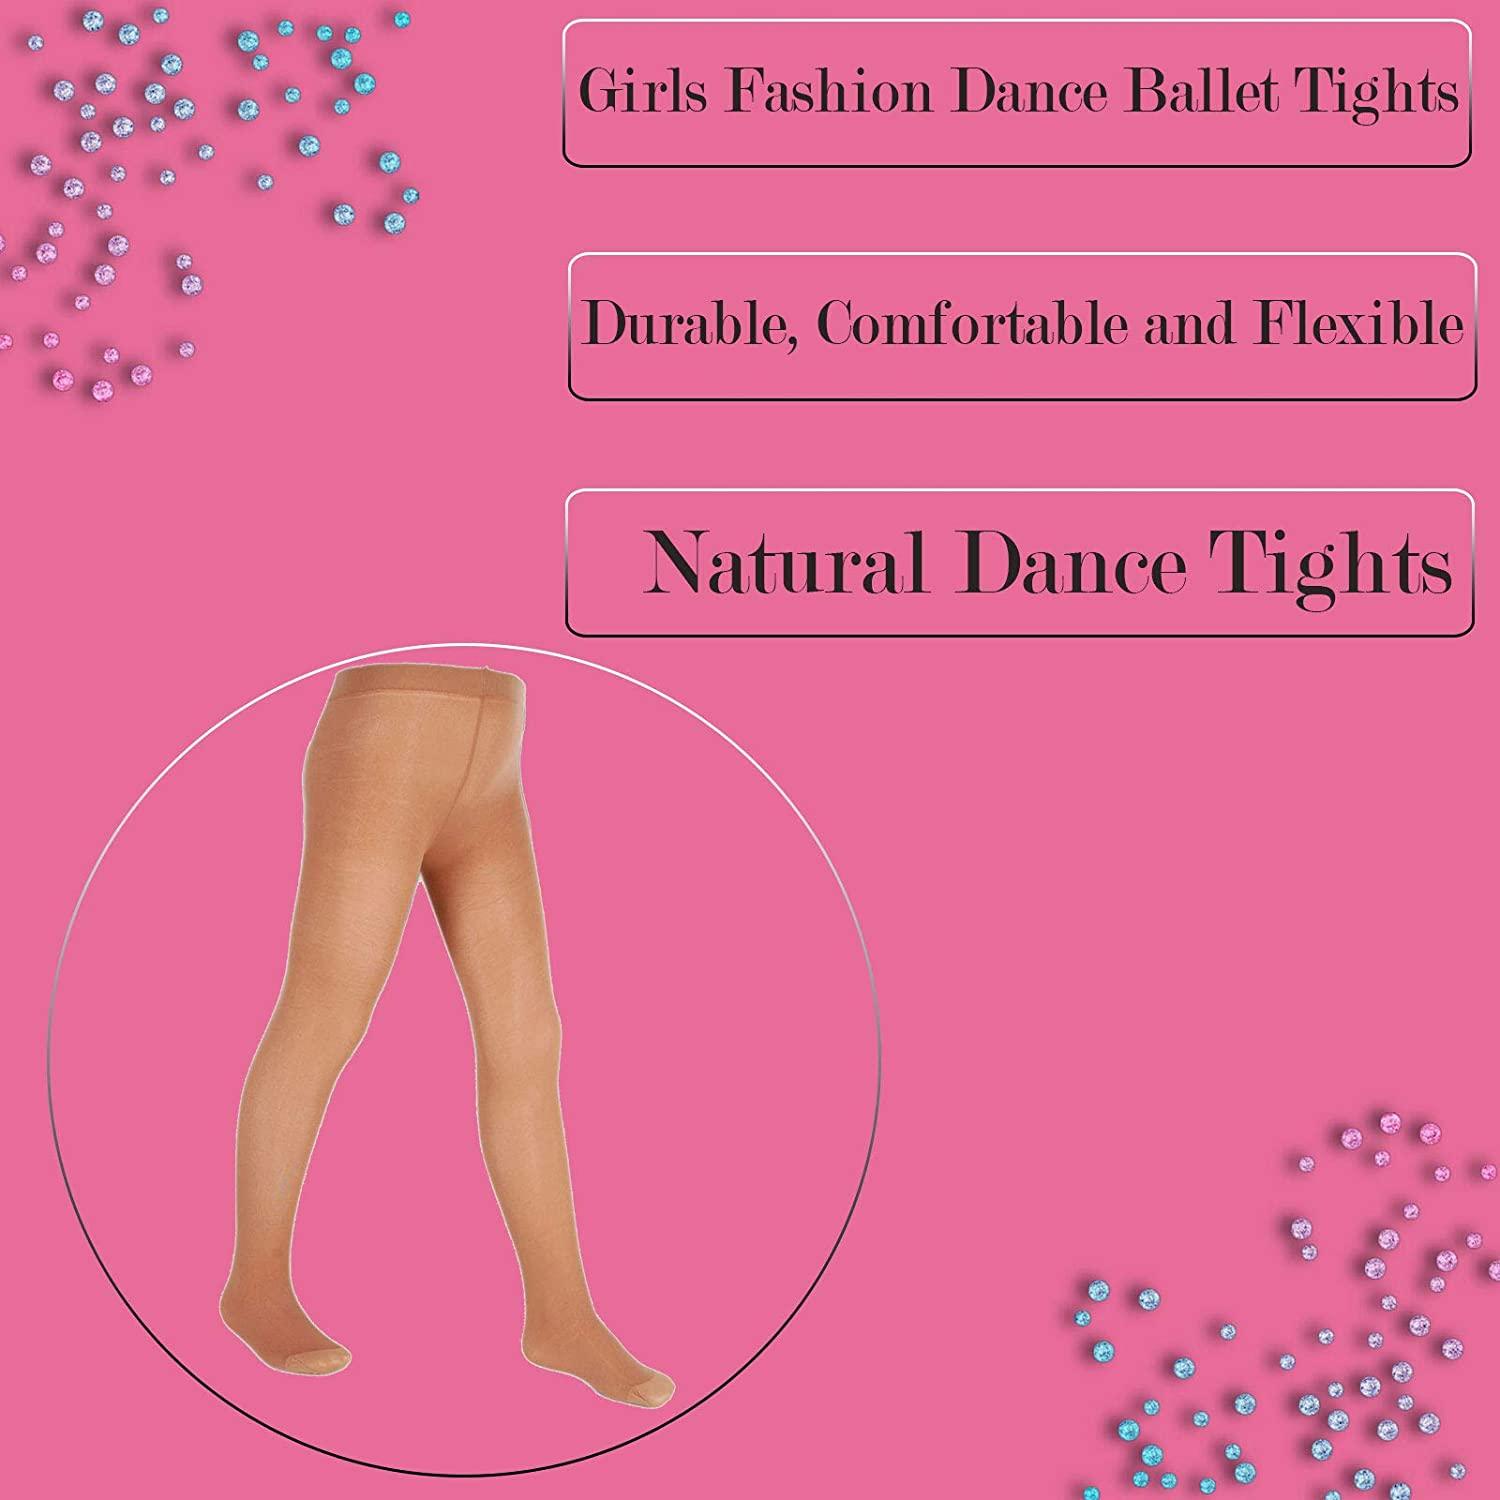 Girls Ballerina Ballet Dance Tights White Pink Toast from Ages 3-14 Years